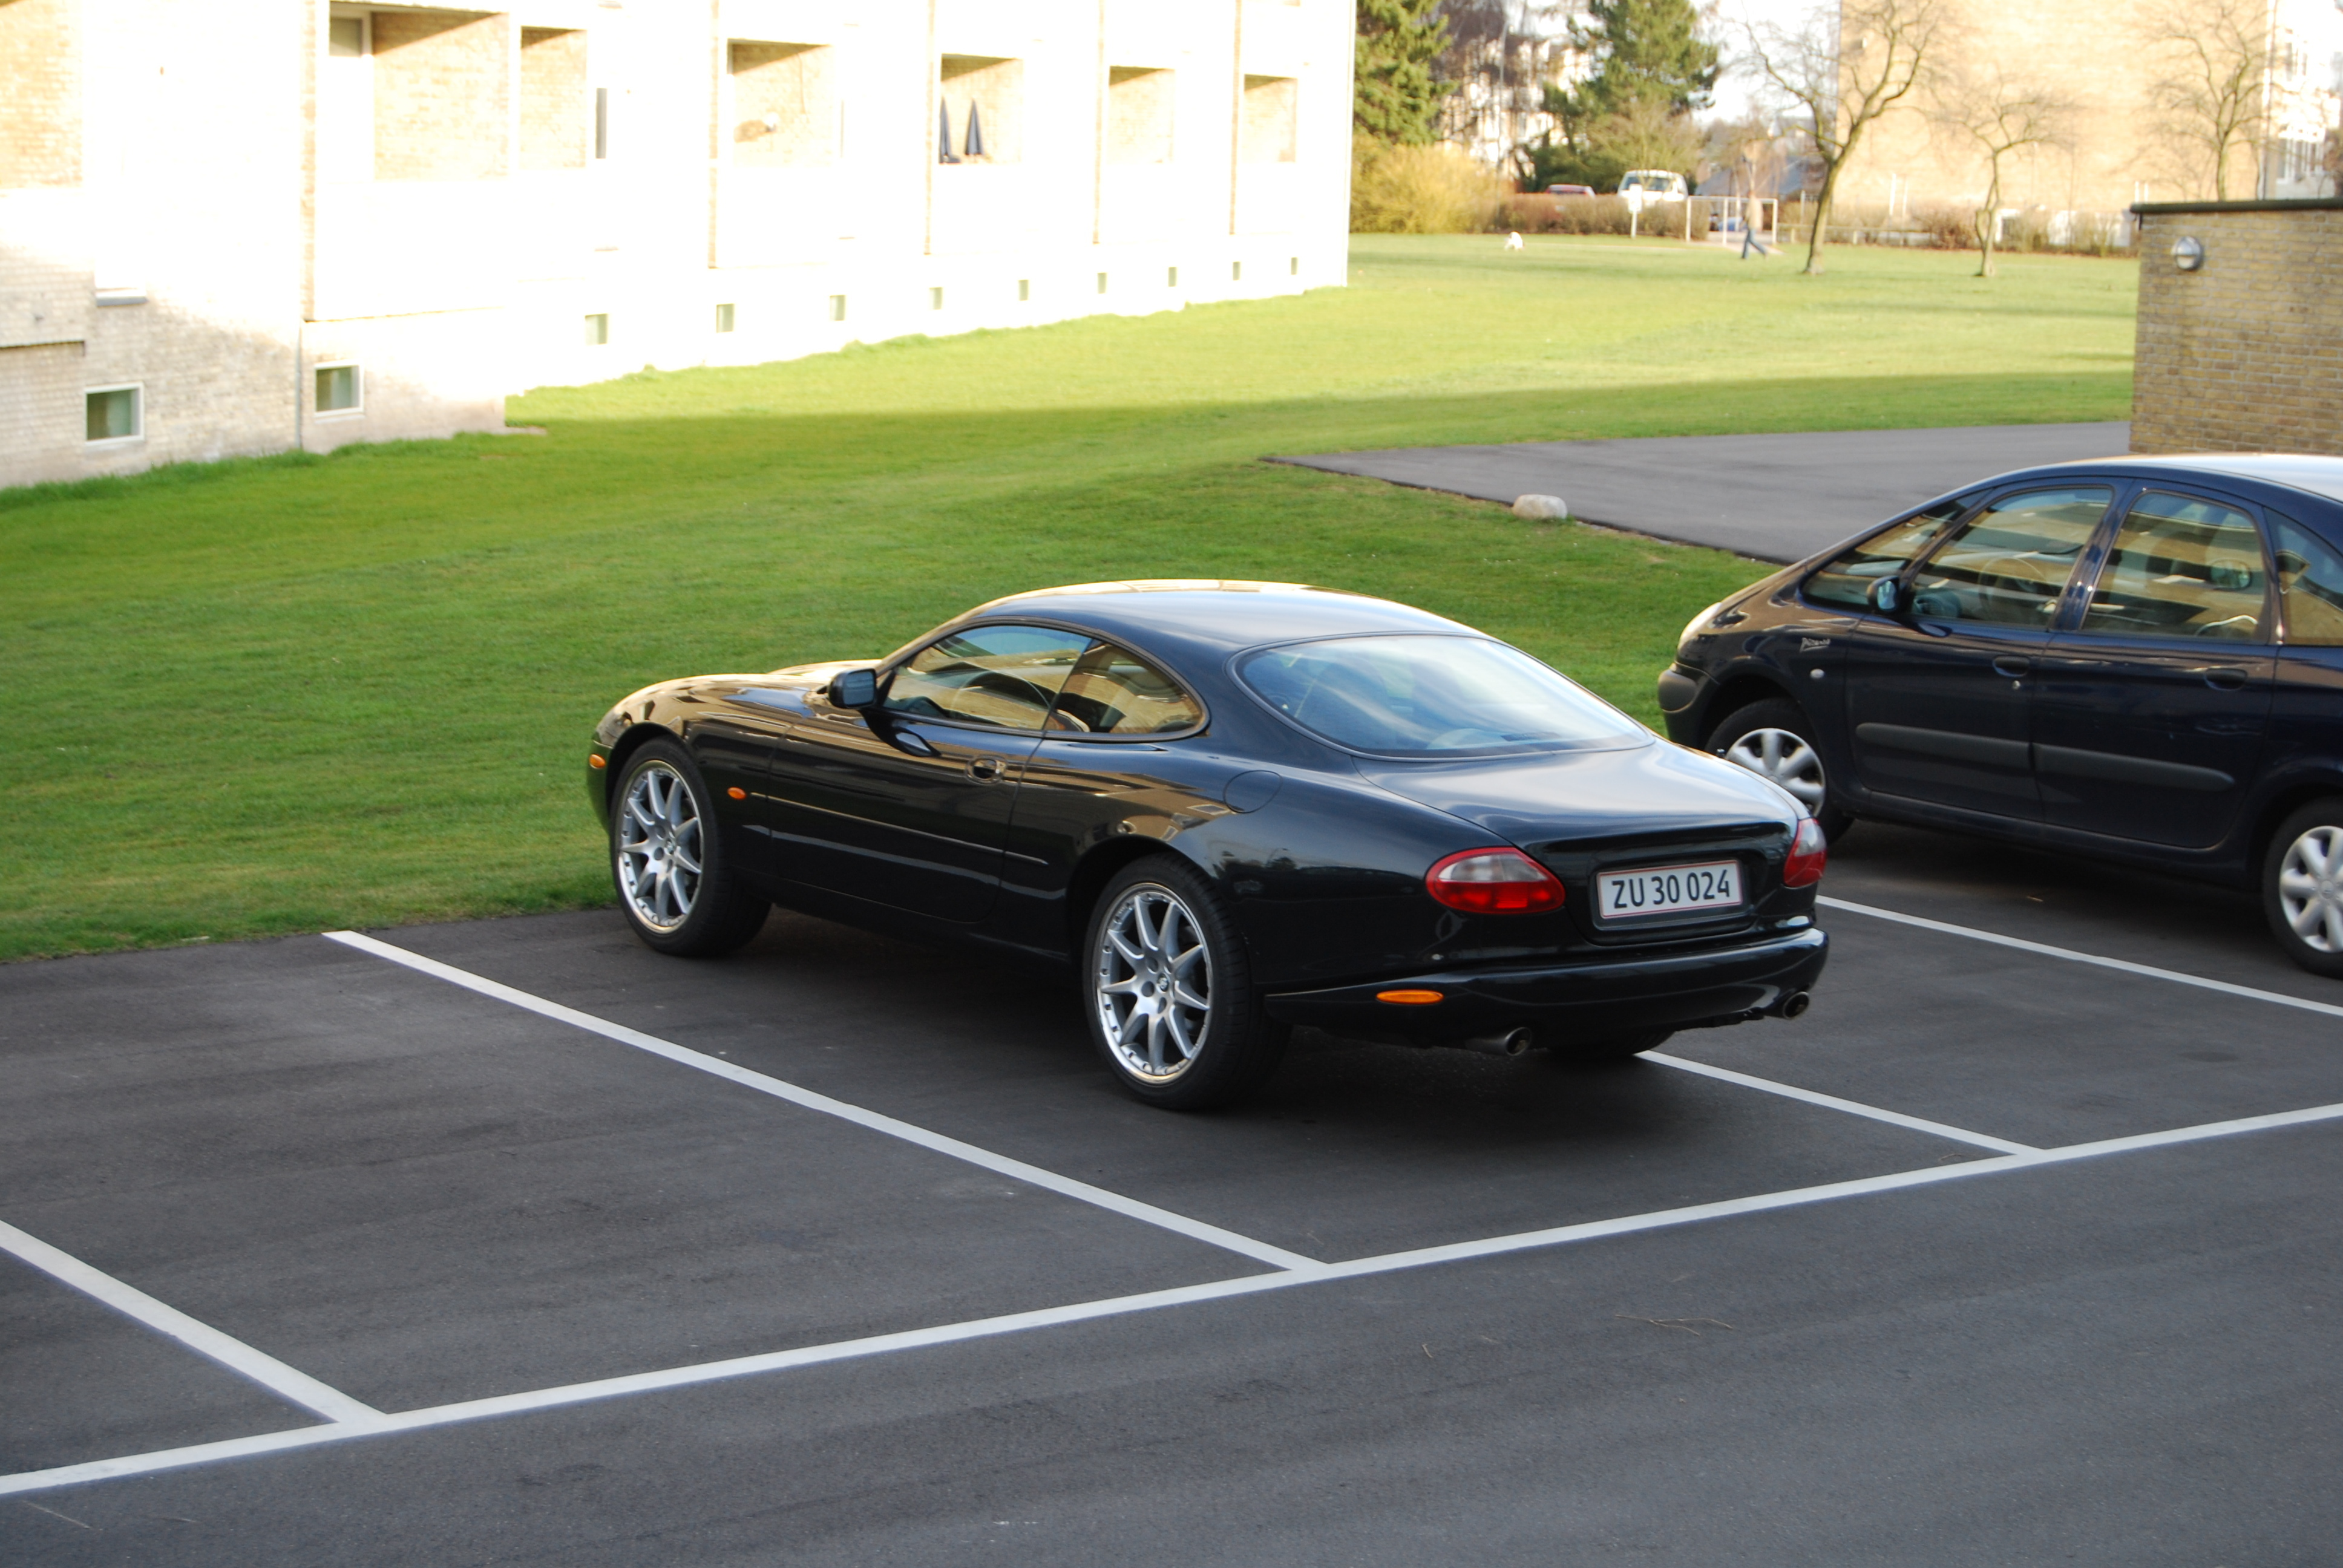 upgrades as a slightly xk end hondayes well dynamic and uk gets price cuts better jaguar front